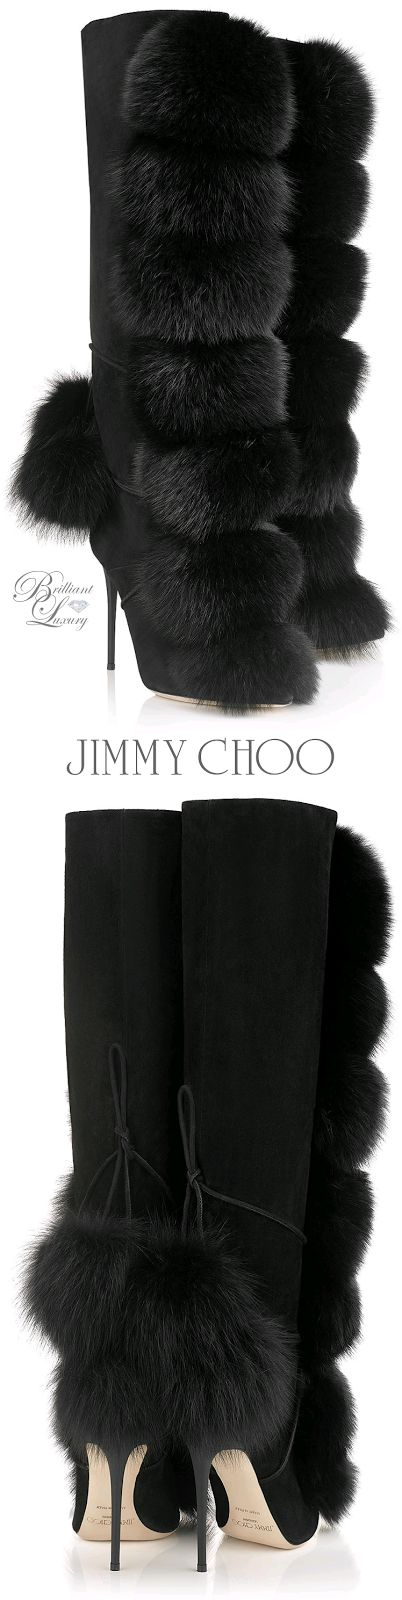 Brilliant Luxury * Jimmy Choo 'Deeta'  Inna Erten